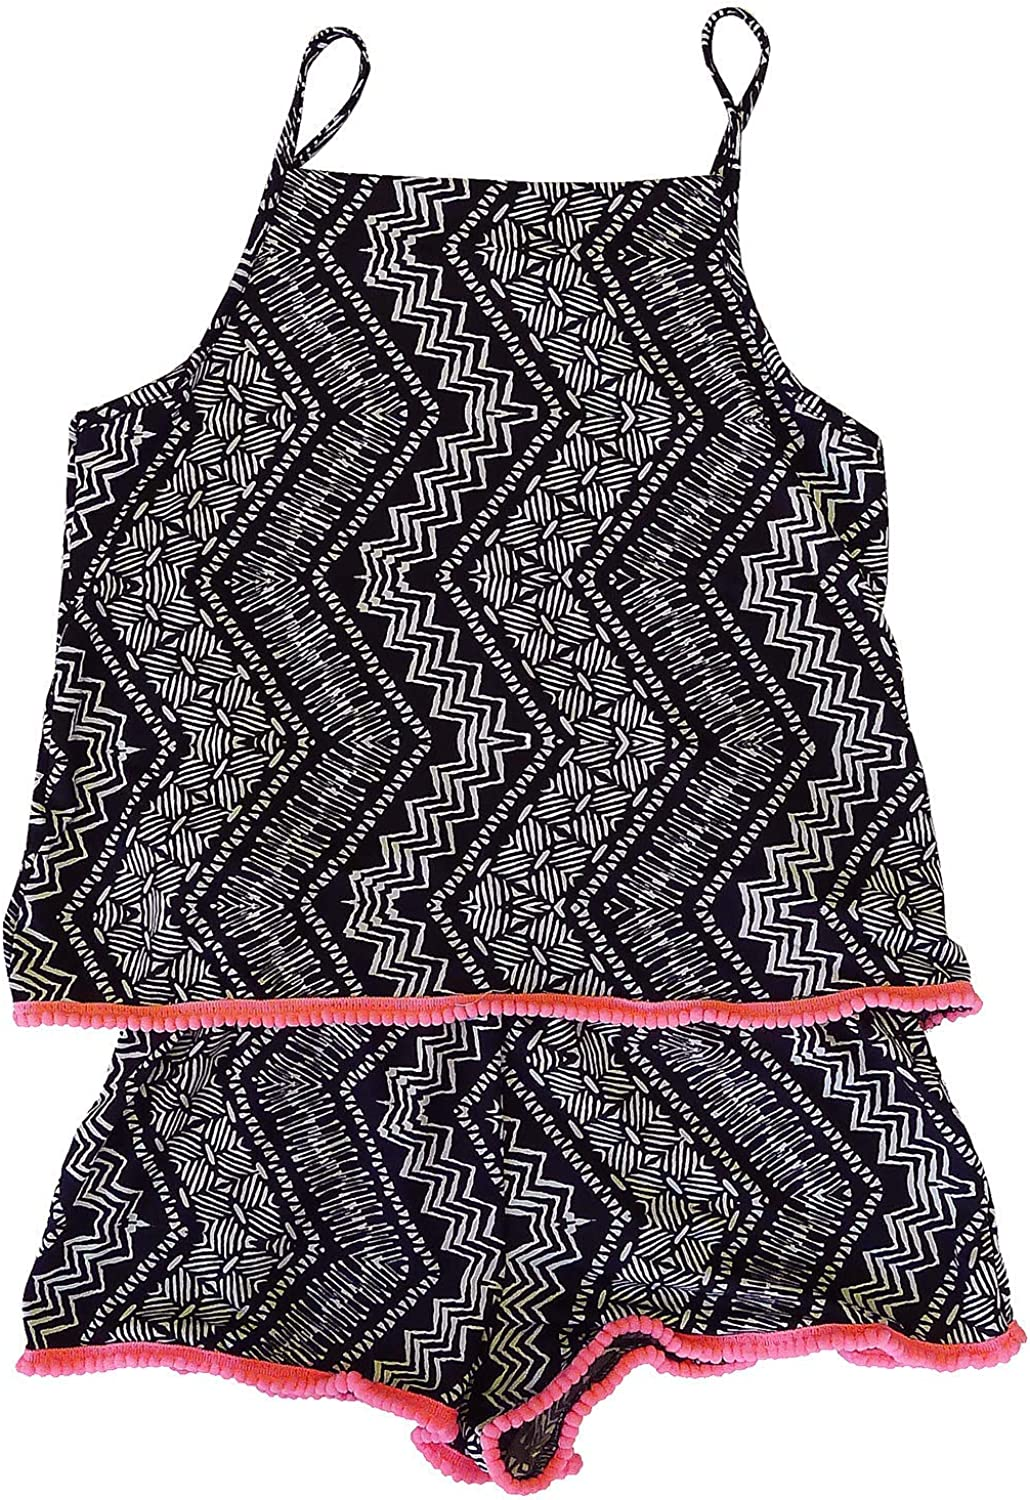 Get Wivvit Girls Pom Pom Trim Summer Fashion Shorts Playsuit Strappy Romper Sizes from 6 to 14 Years